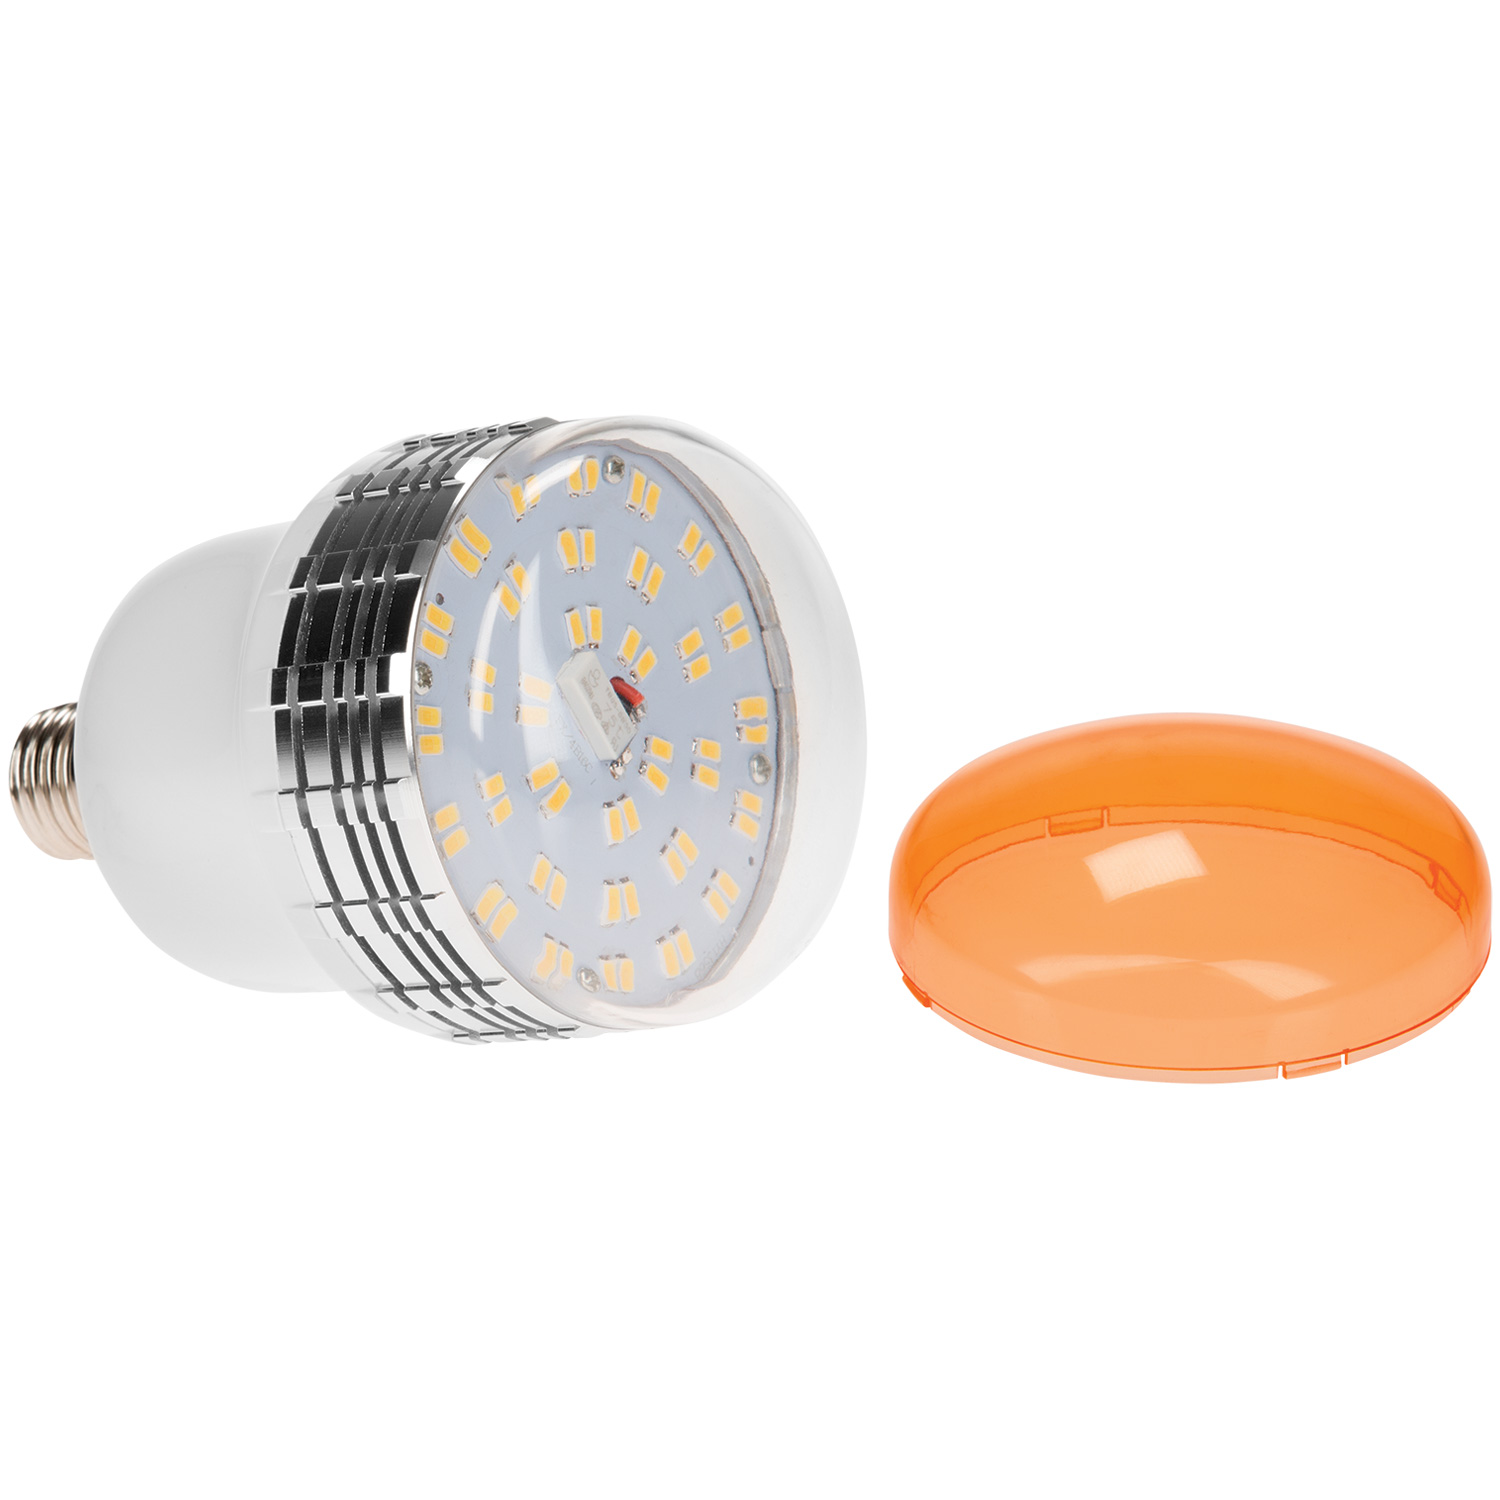 Daylight LED Bulb with Tungsten Cover (35-watt)